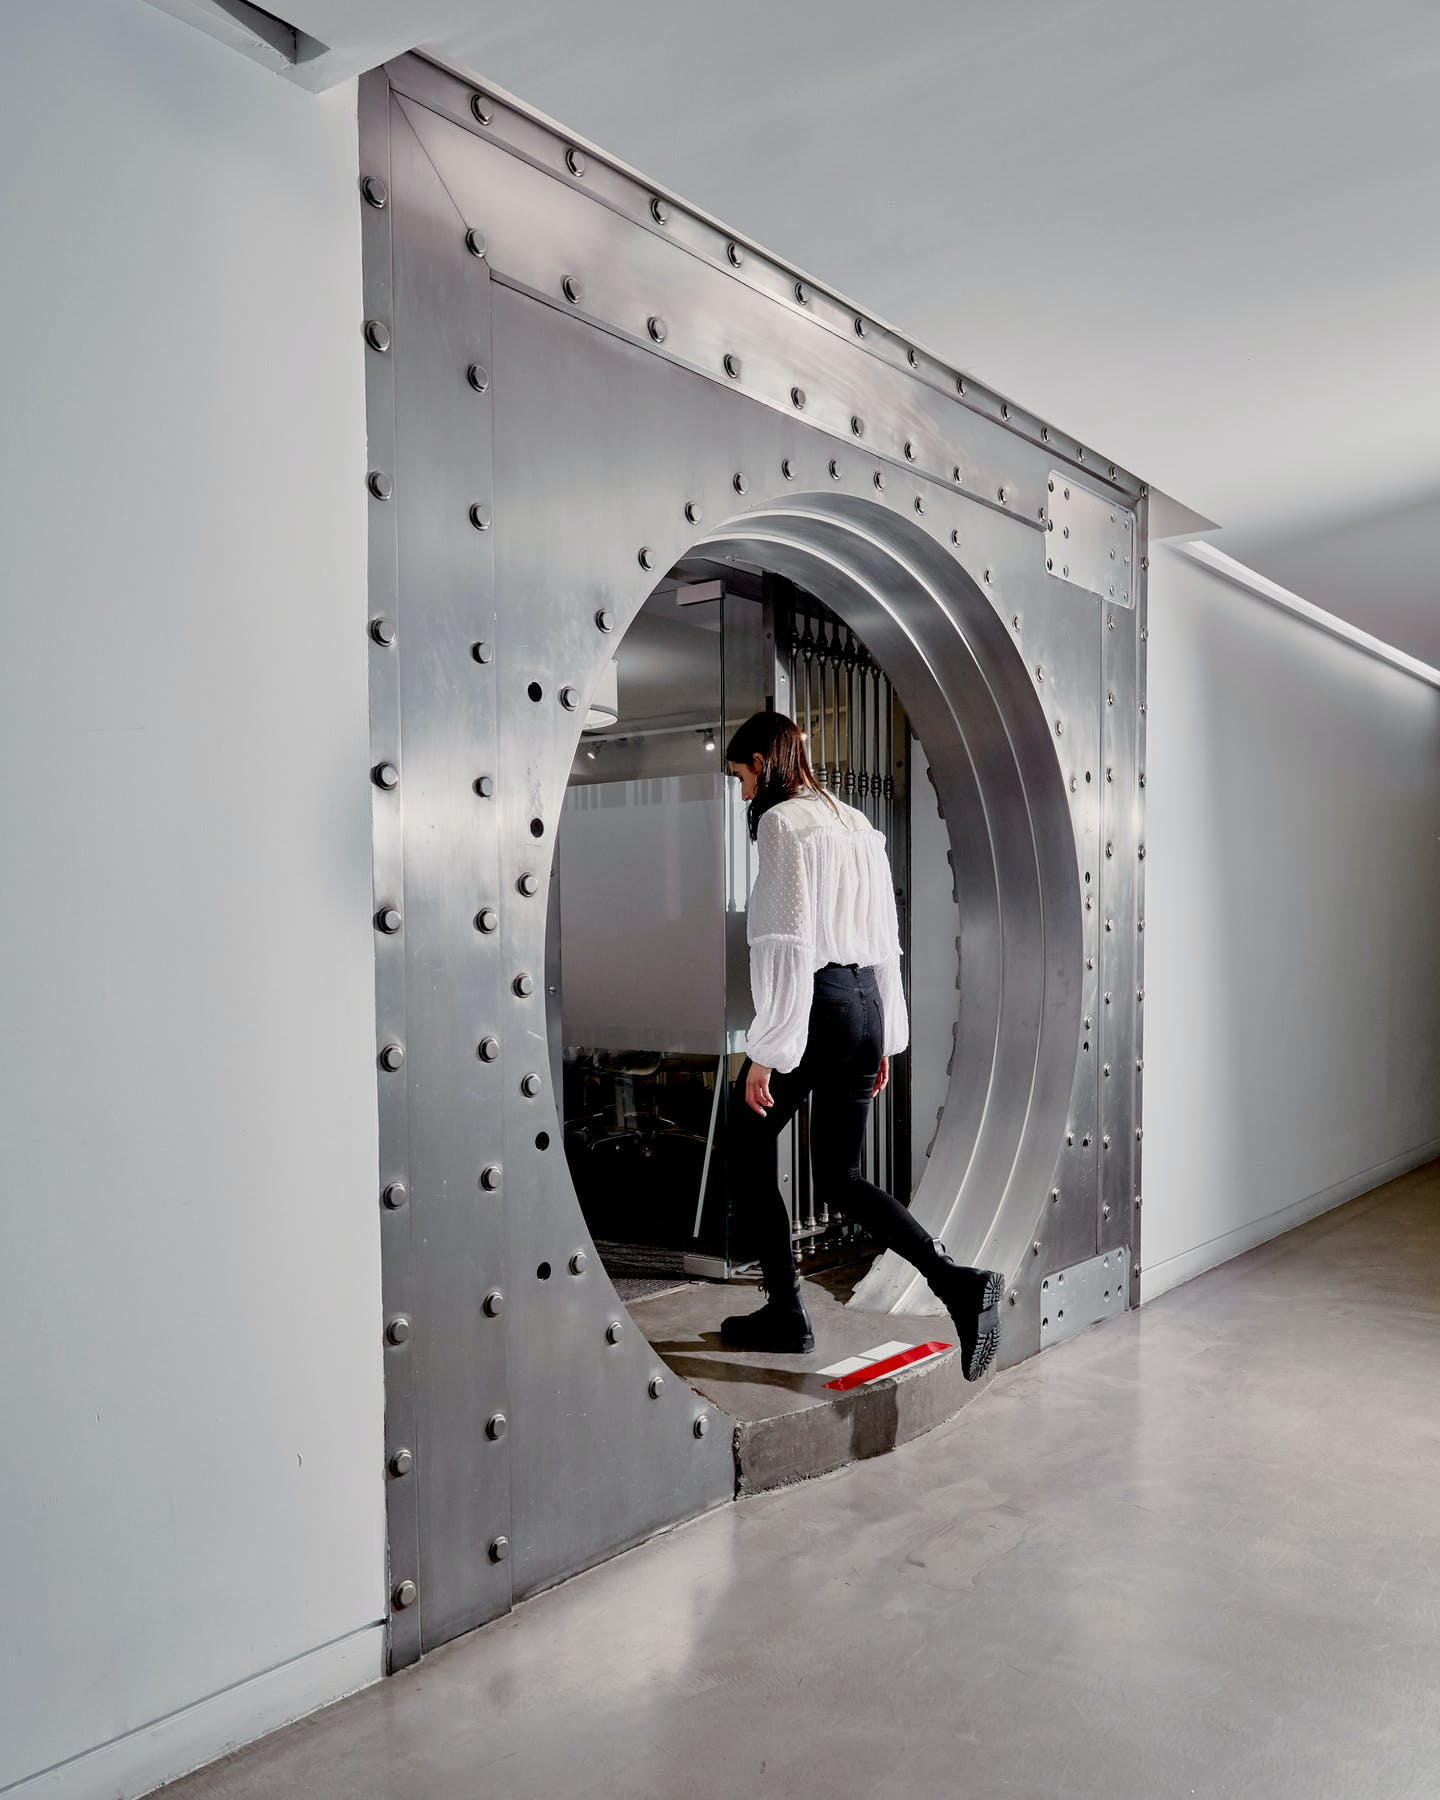 What Do People Do With the Old Bank Vaults When Money Goes